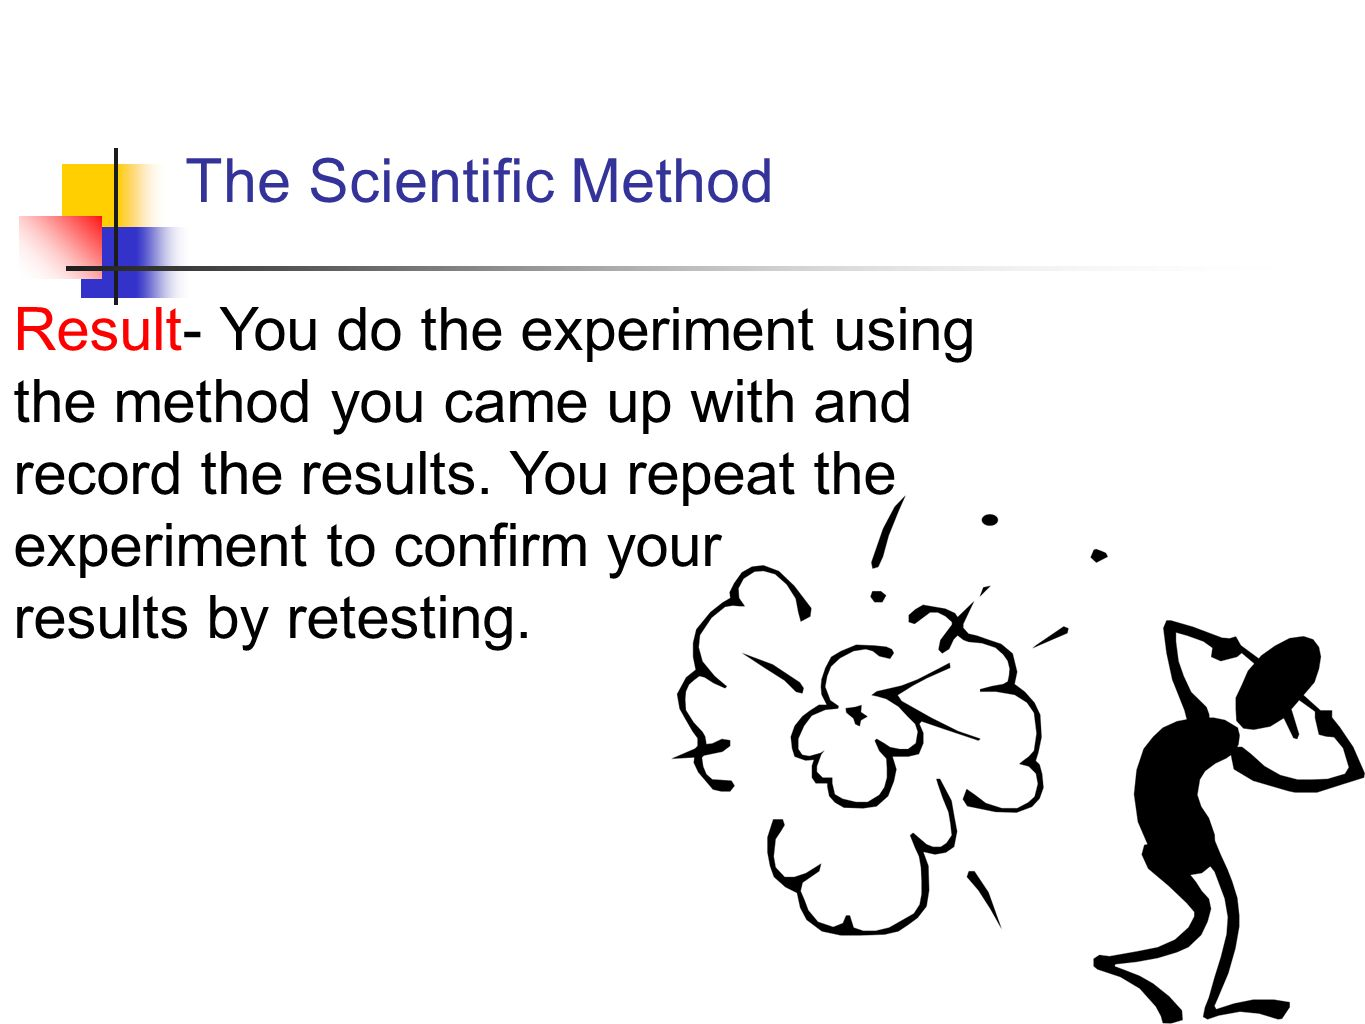 labpaq experiment scientific method The scientific method is the ideal process by which scientists say scientific research should be conducted it is a standardized process which involves asking questions, searching for answers, guessing a possible answer called a hypothesis.